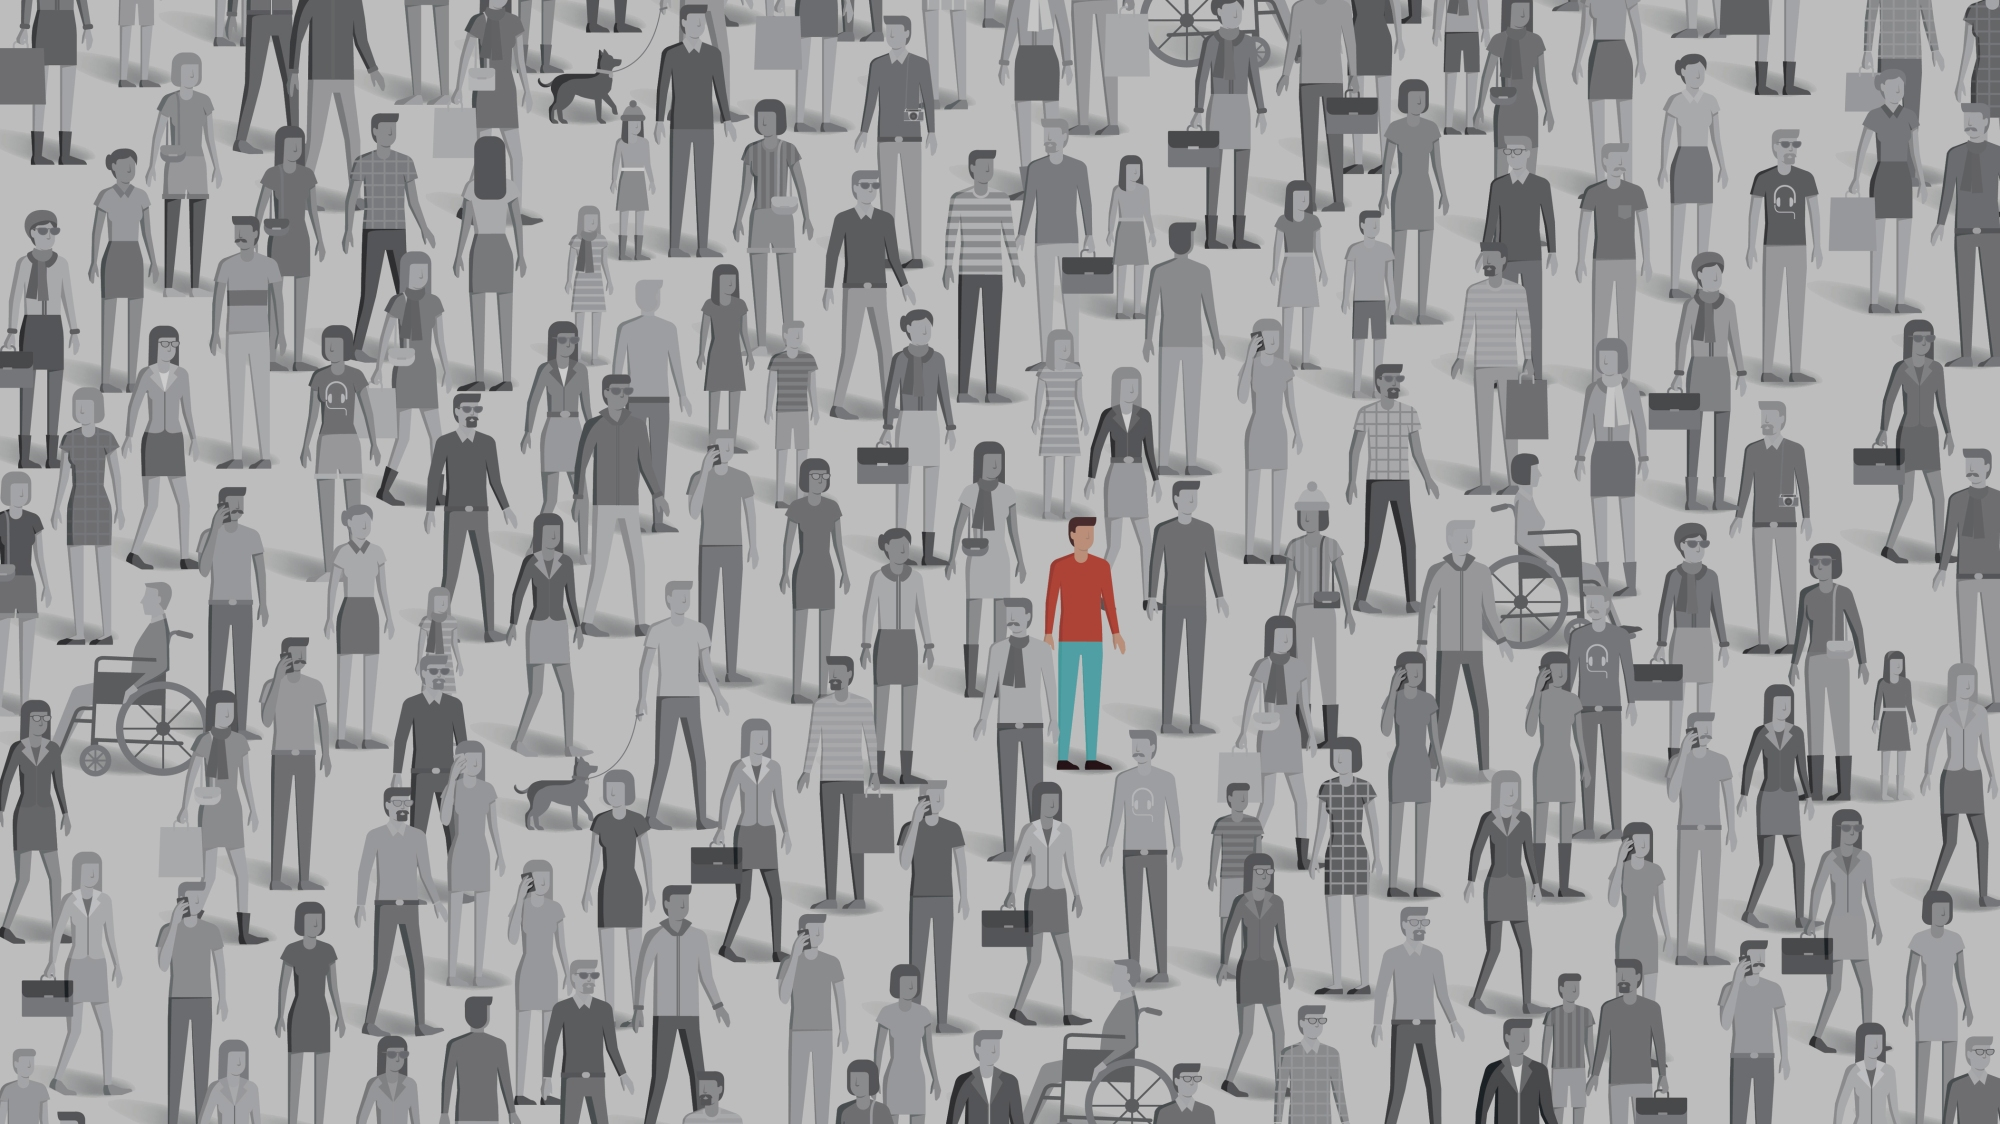 Image of individual standing out in a crowd.